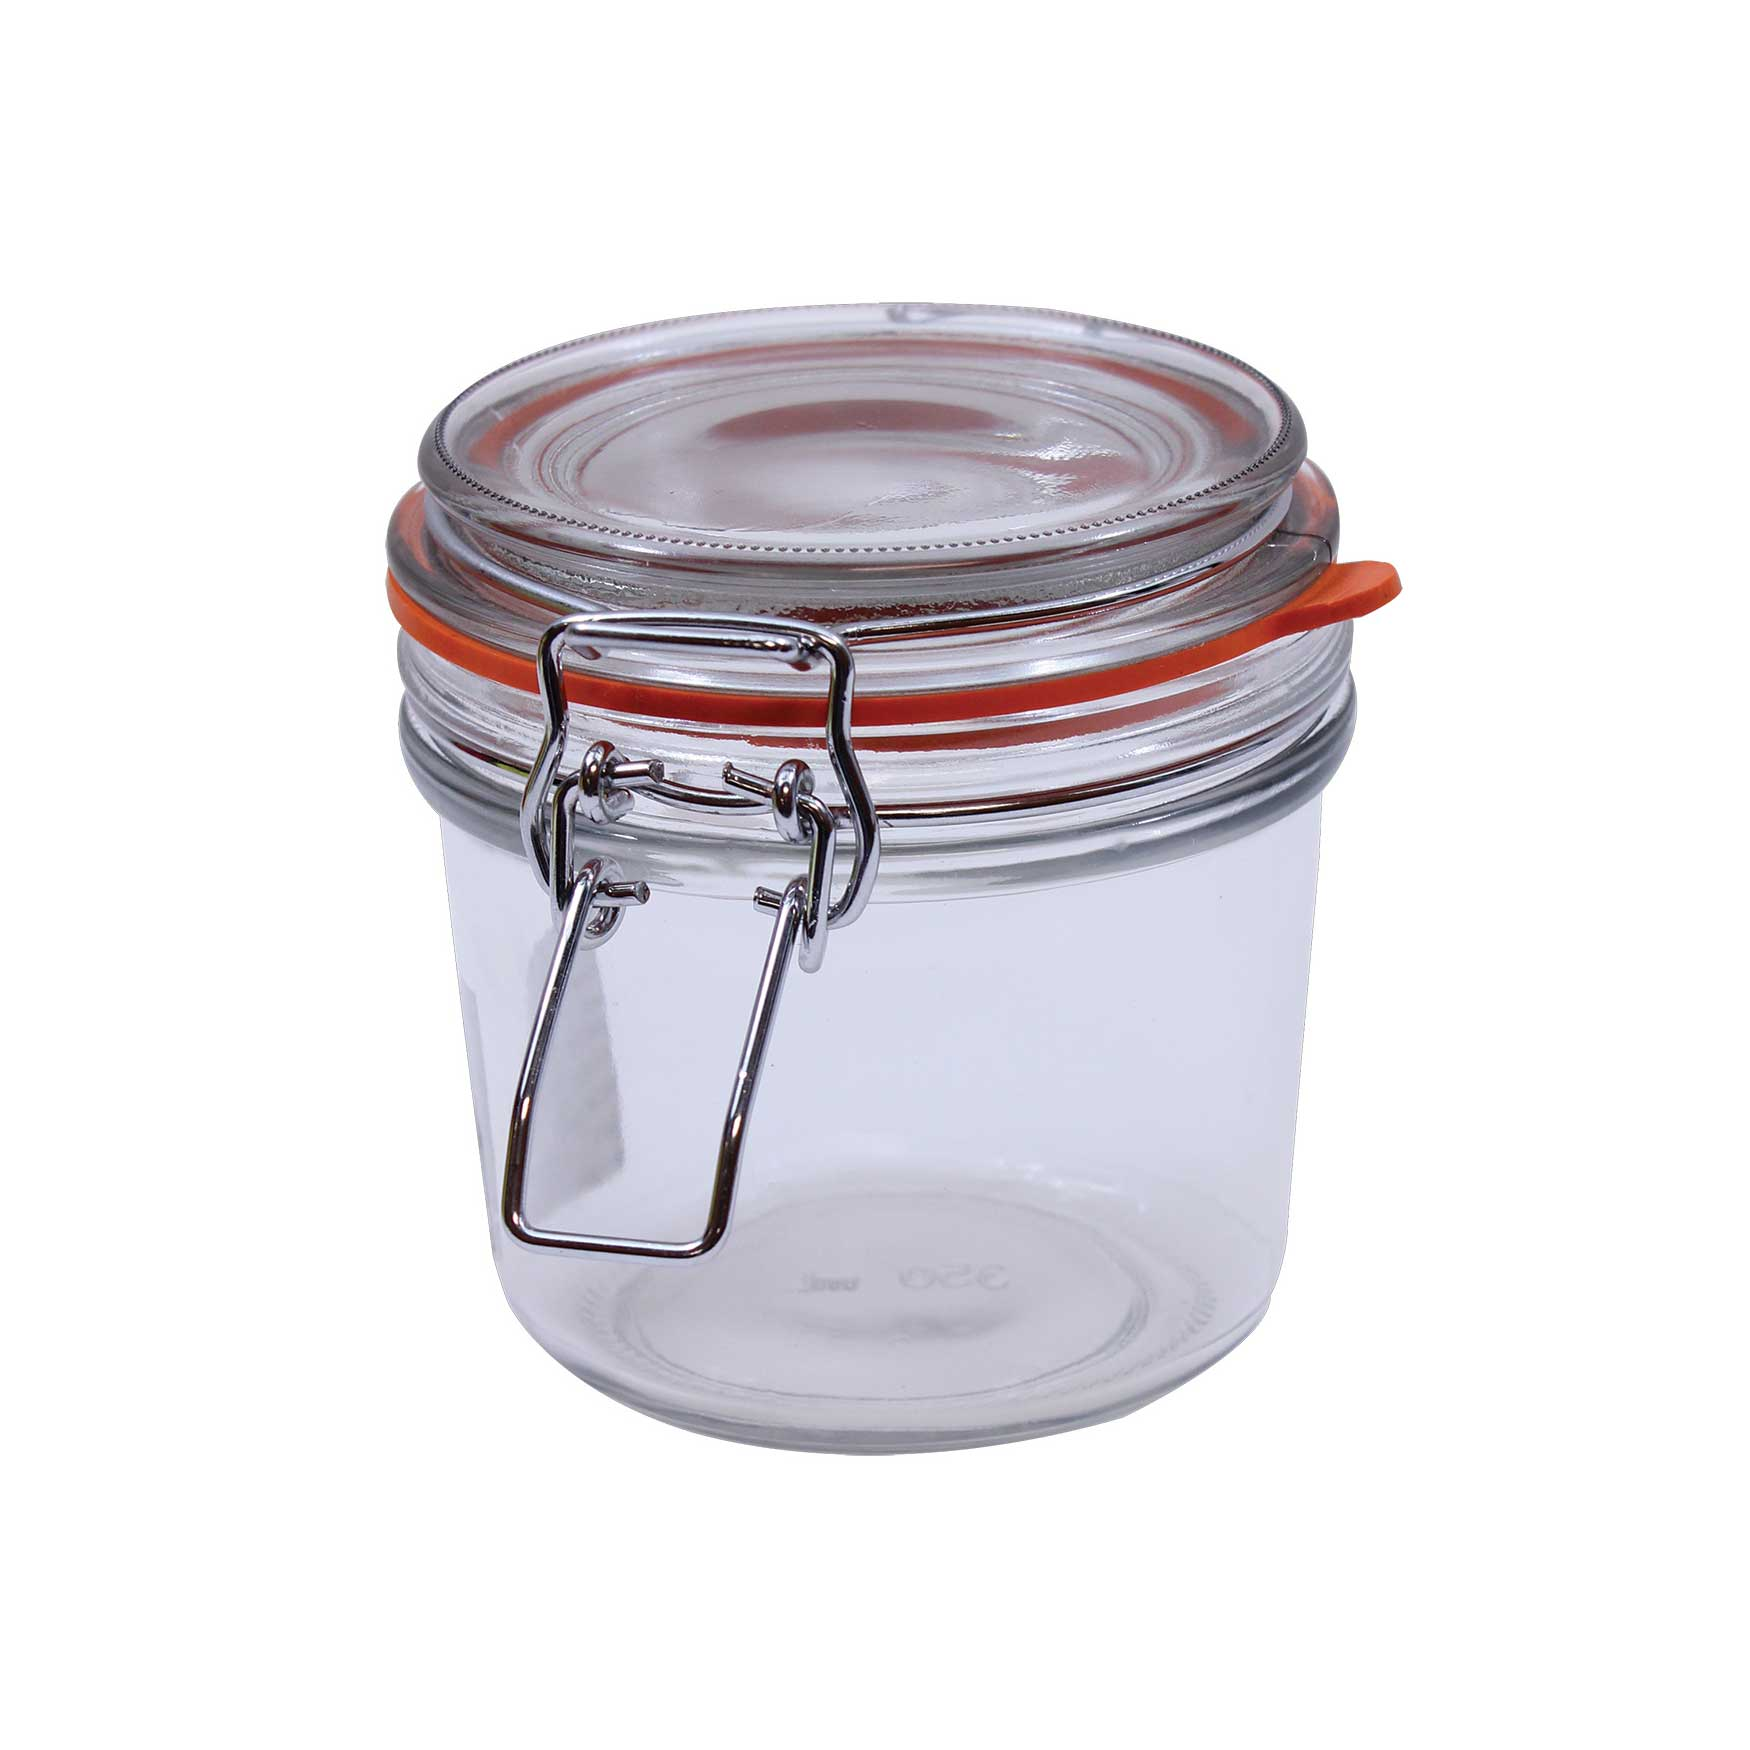 TableCraft Products CJS12 storage jar / ingredient canister, glass